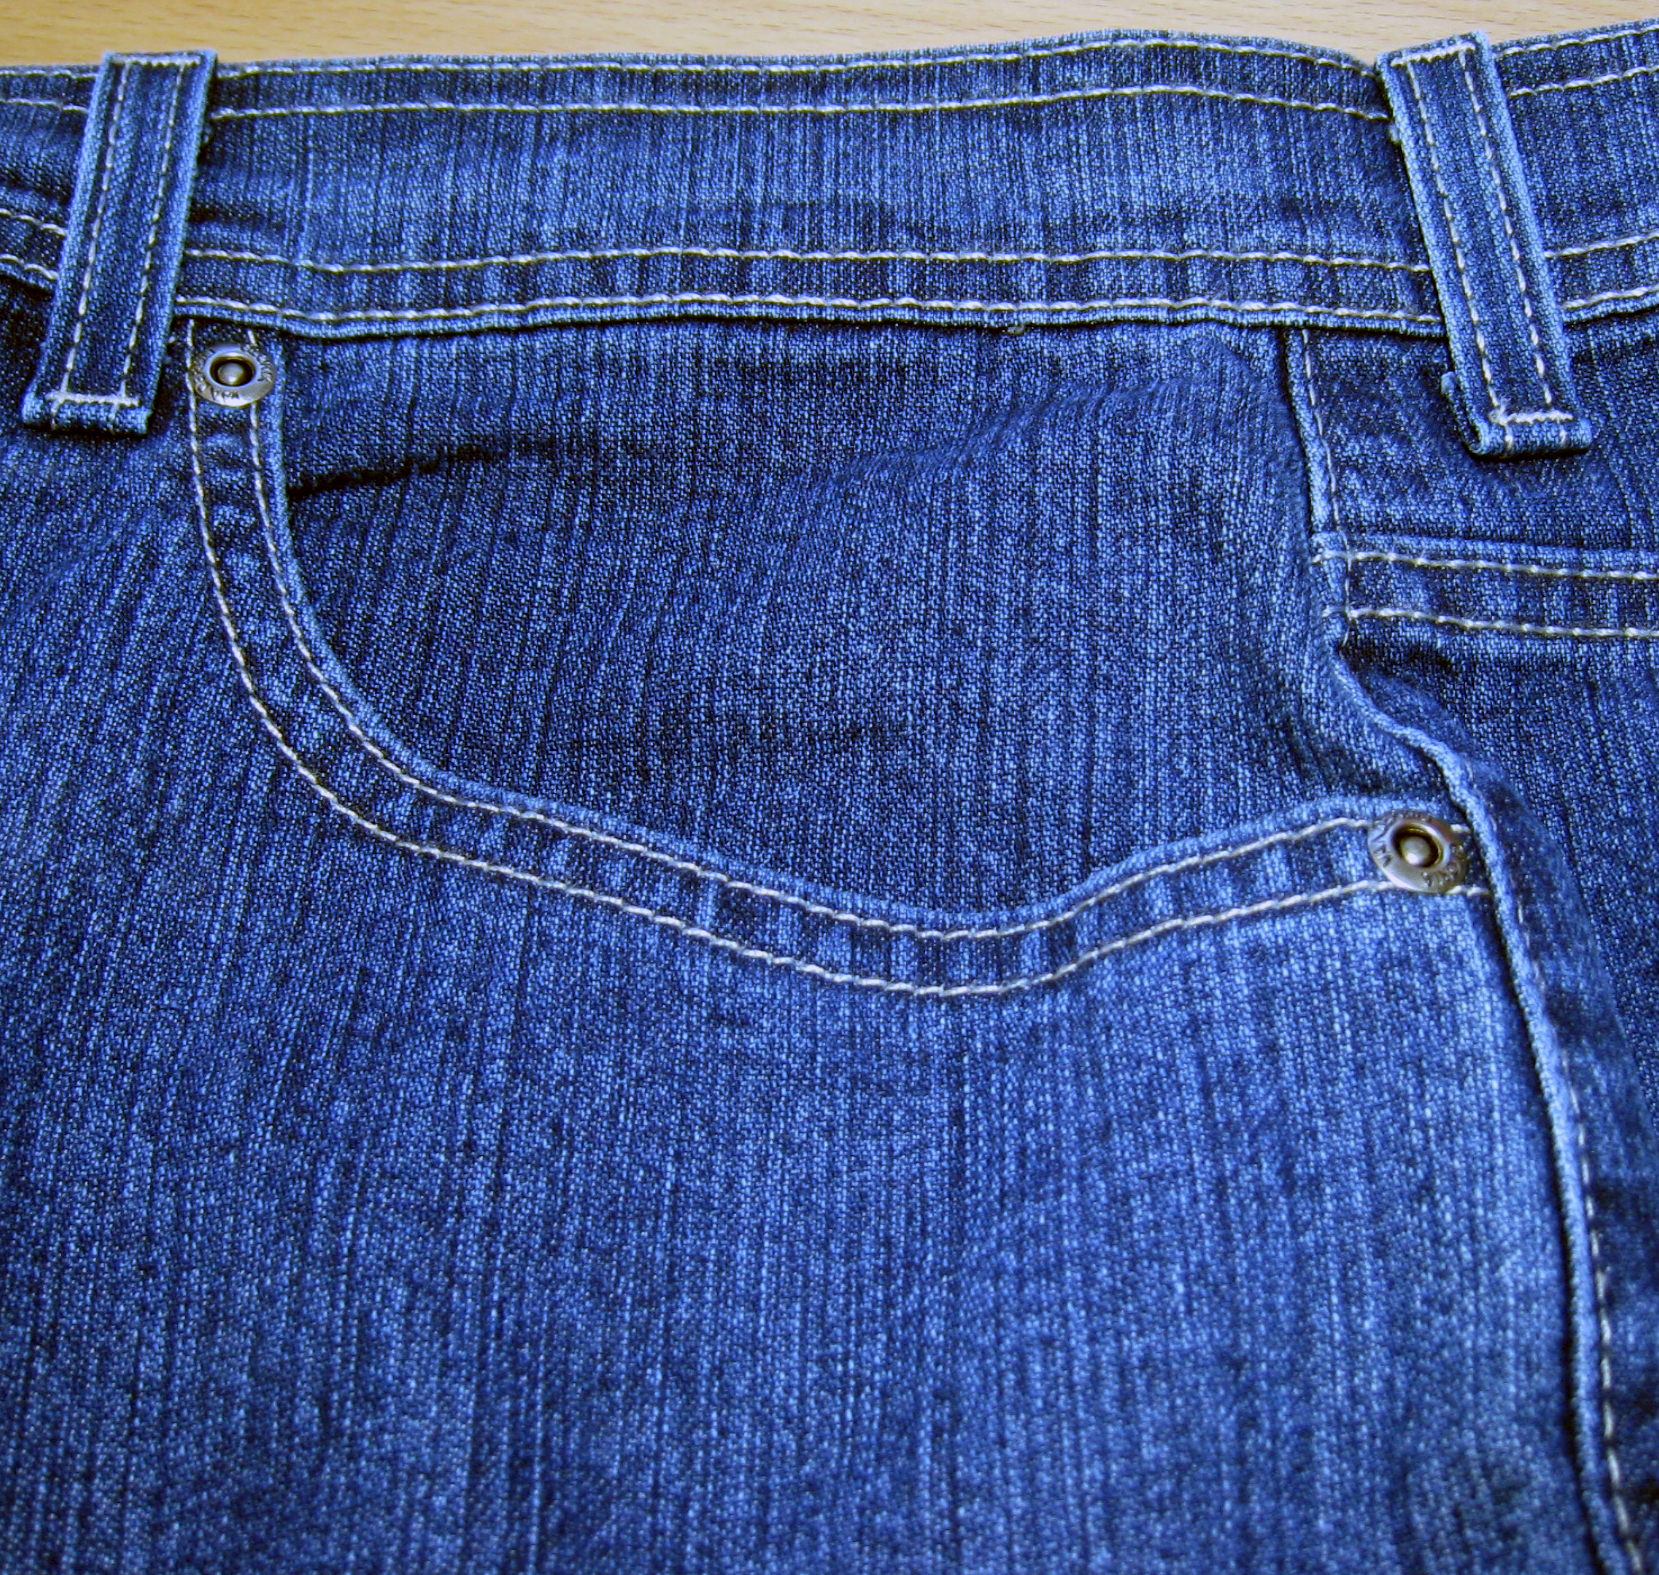 file jeans pocket front